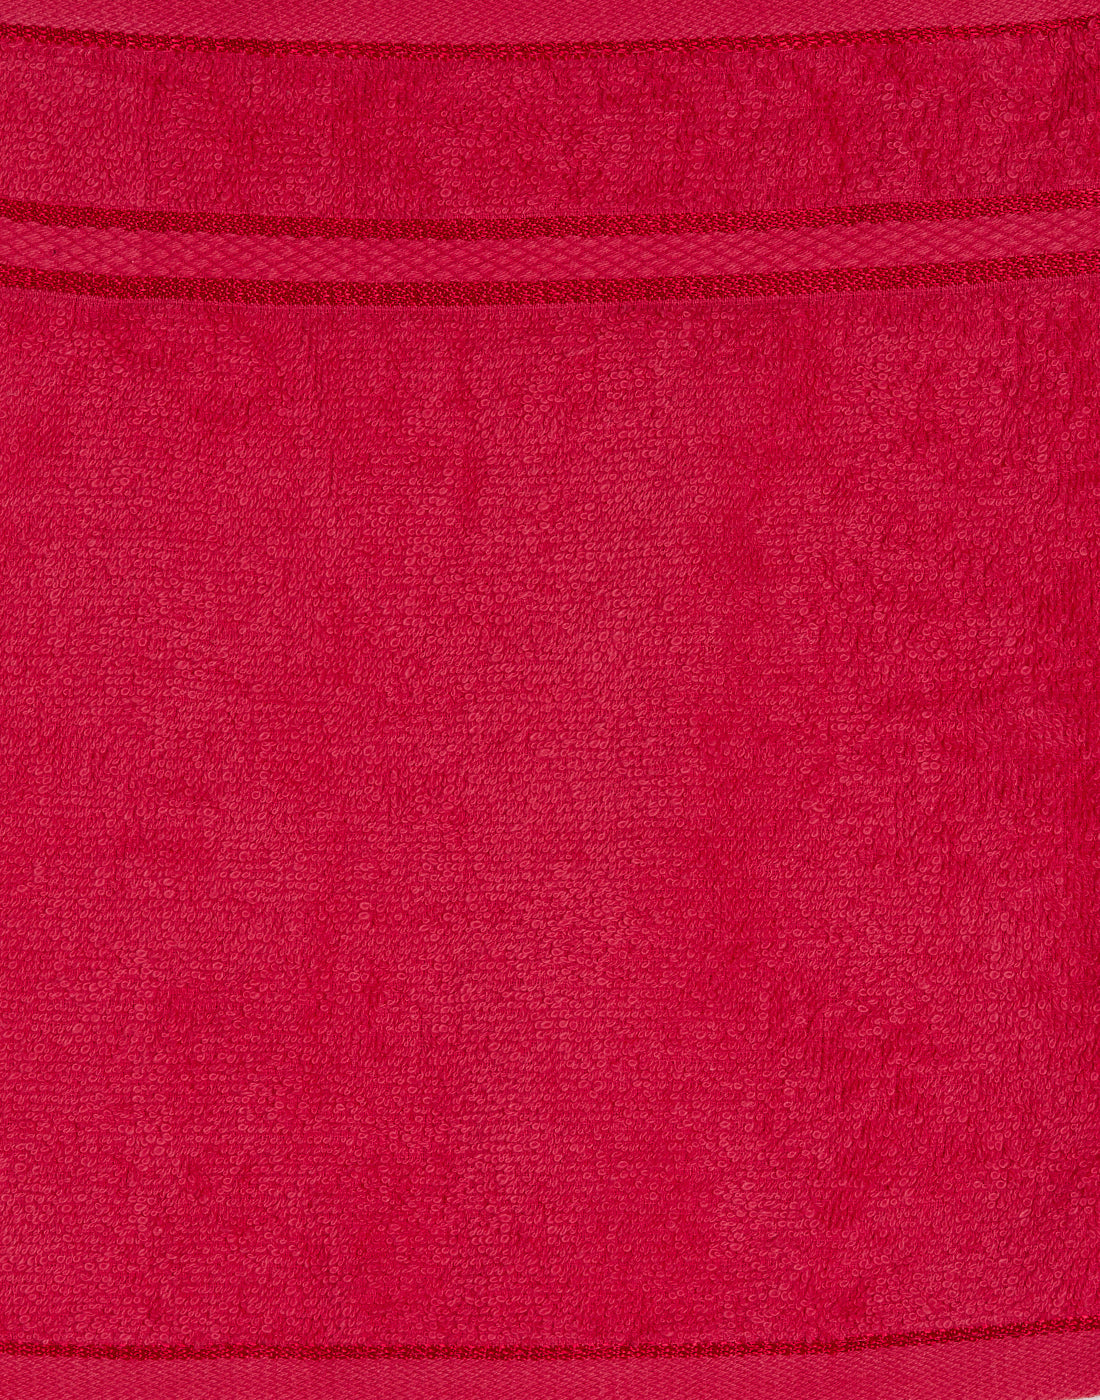 Octave Miami Red Set of 4 Cotton Face Towels